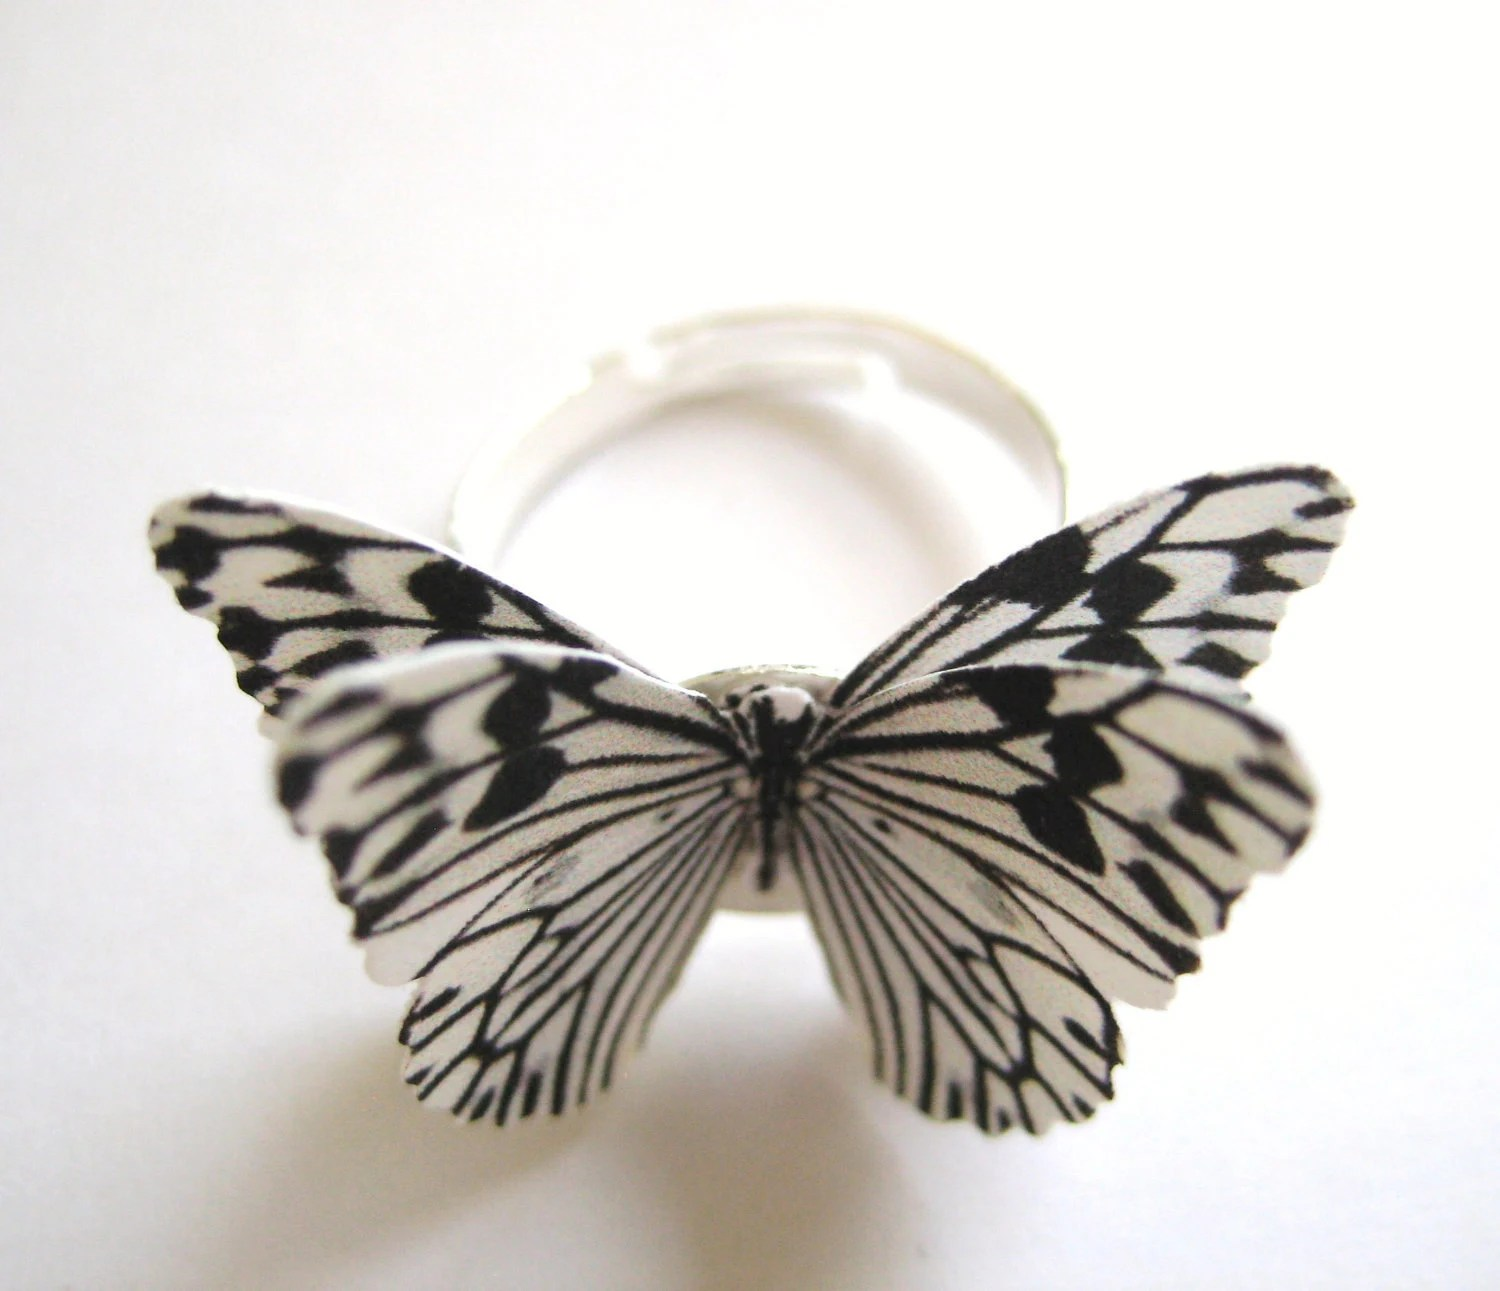 Zebra Print Jewelry - Black And White Stripe Butterfly Ring - SpotLightJewelry